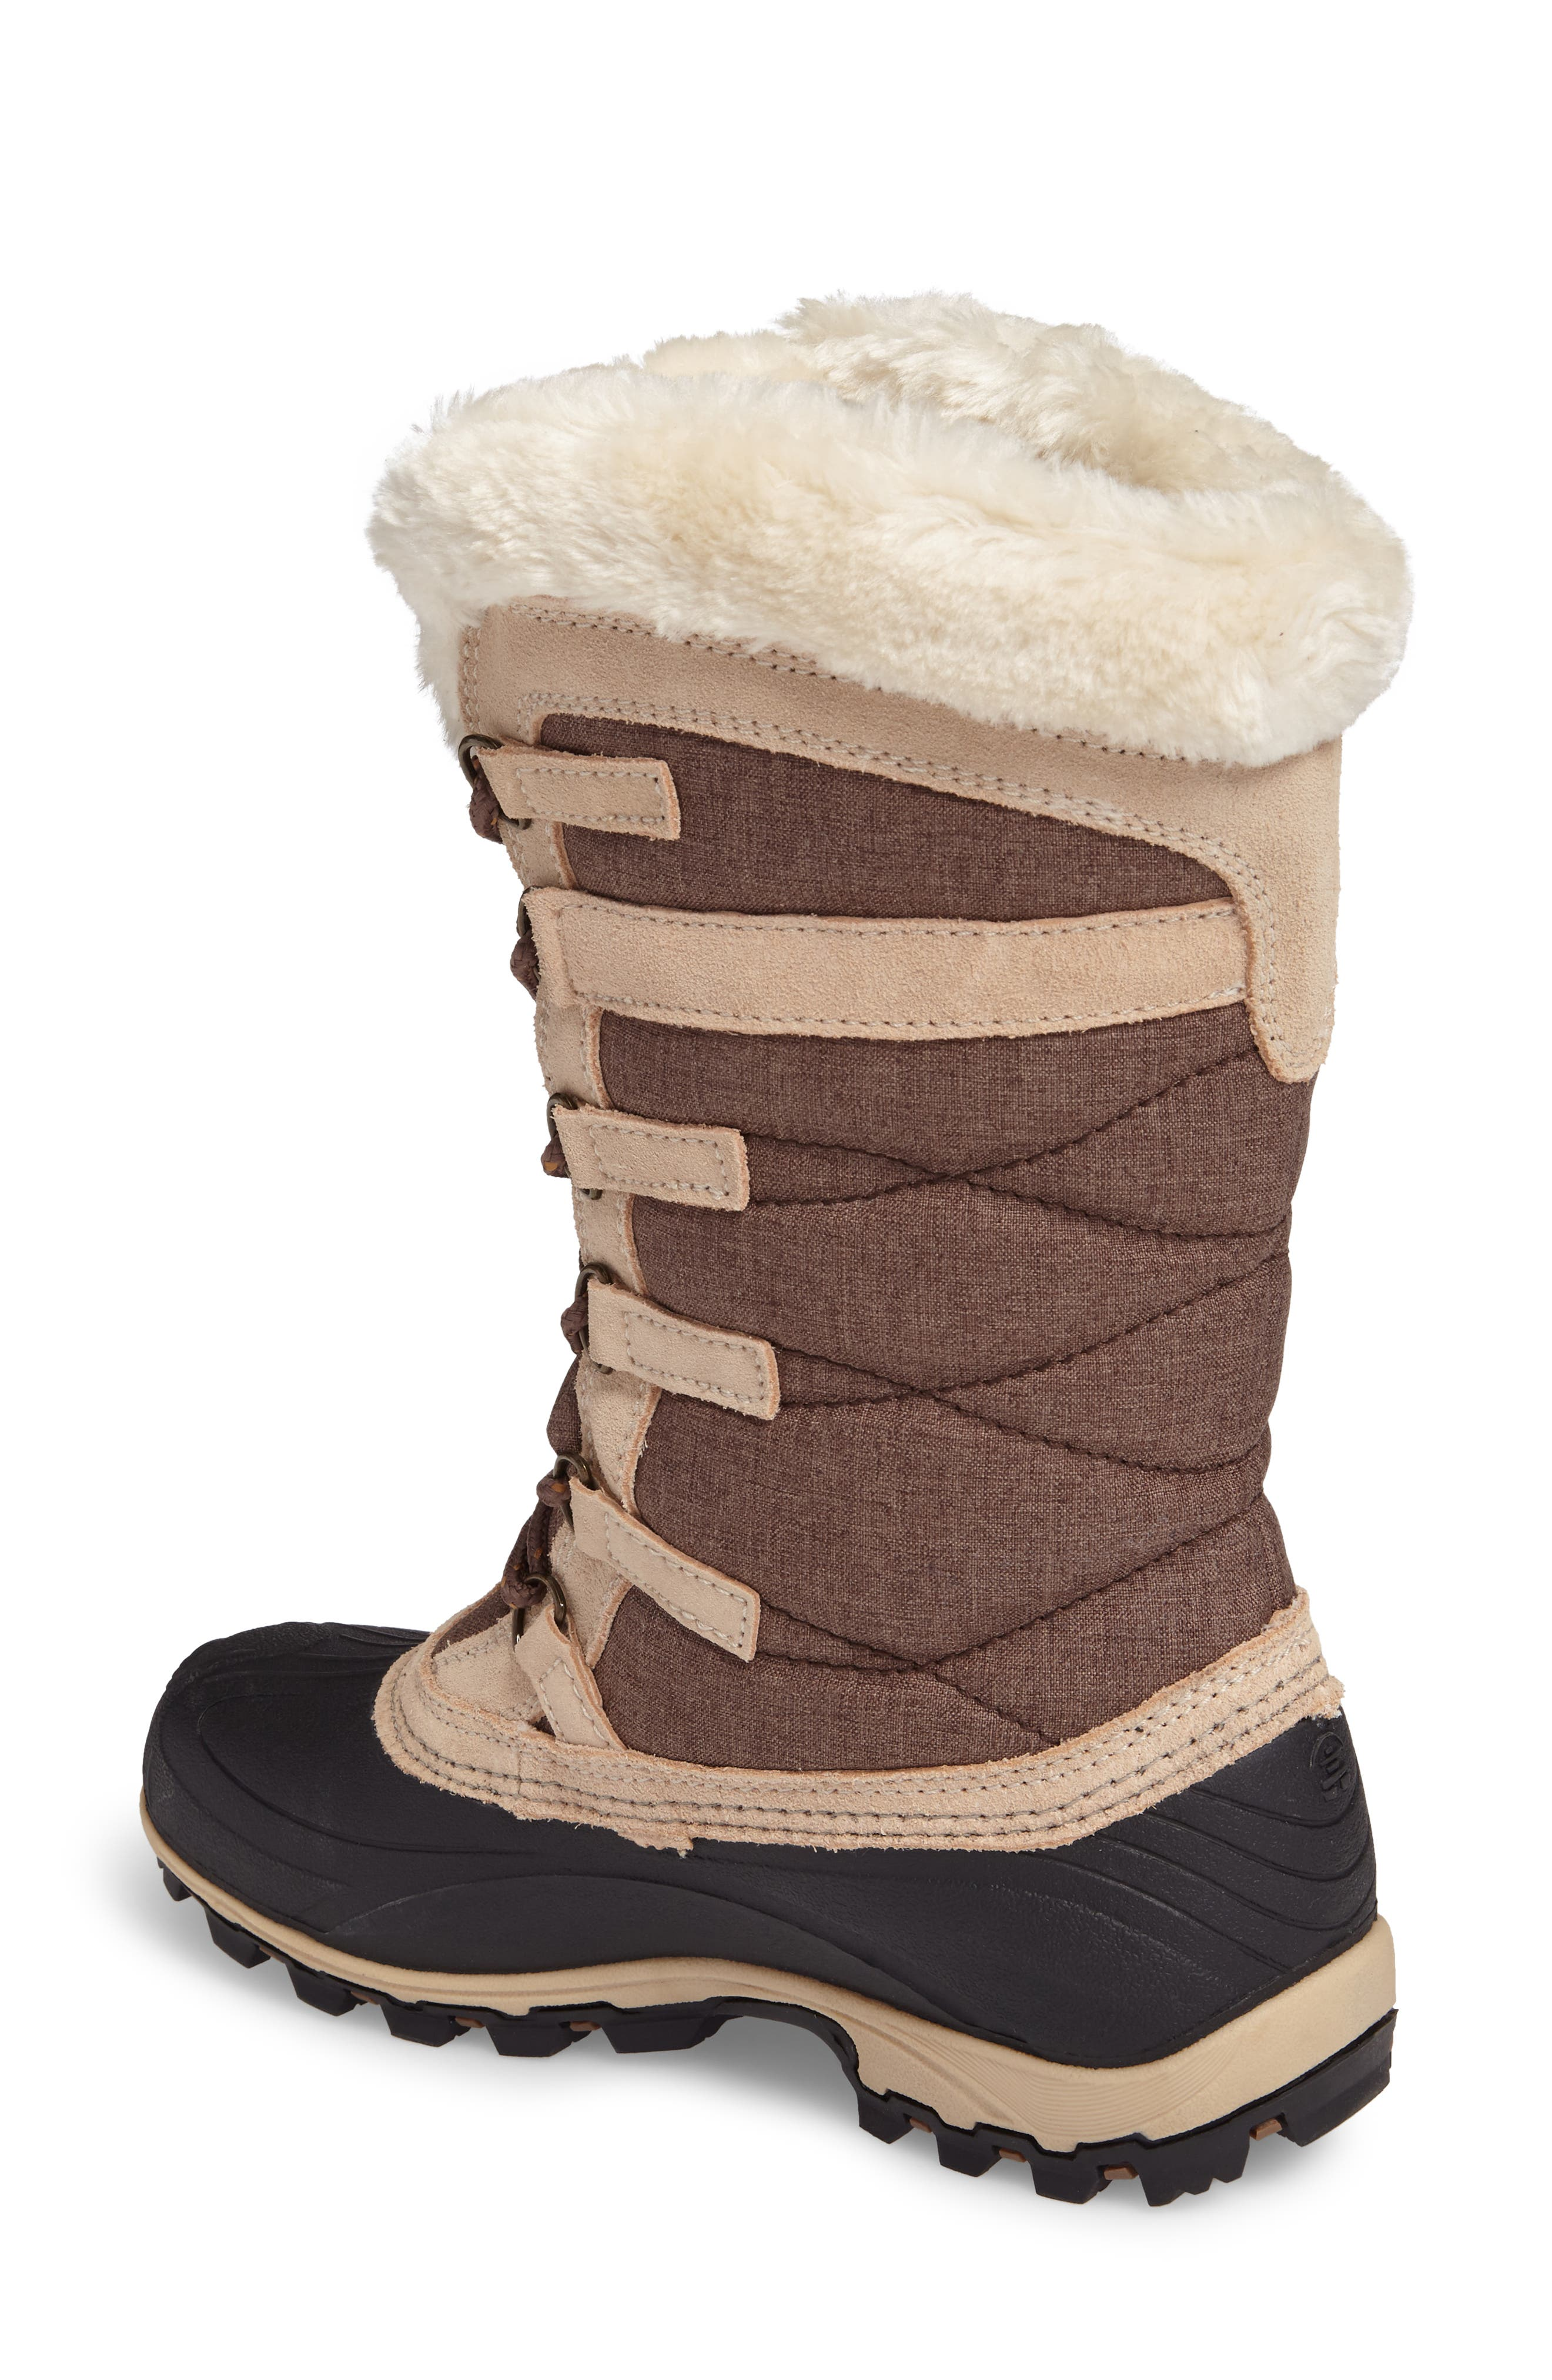 Snowvalley Waterproof Boot with Faux Fur Cuff,                             Alternate thumbnail 2, color,                             BROWN FABRIC